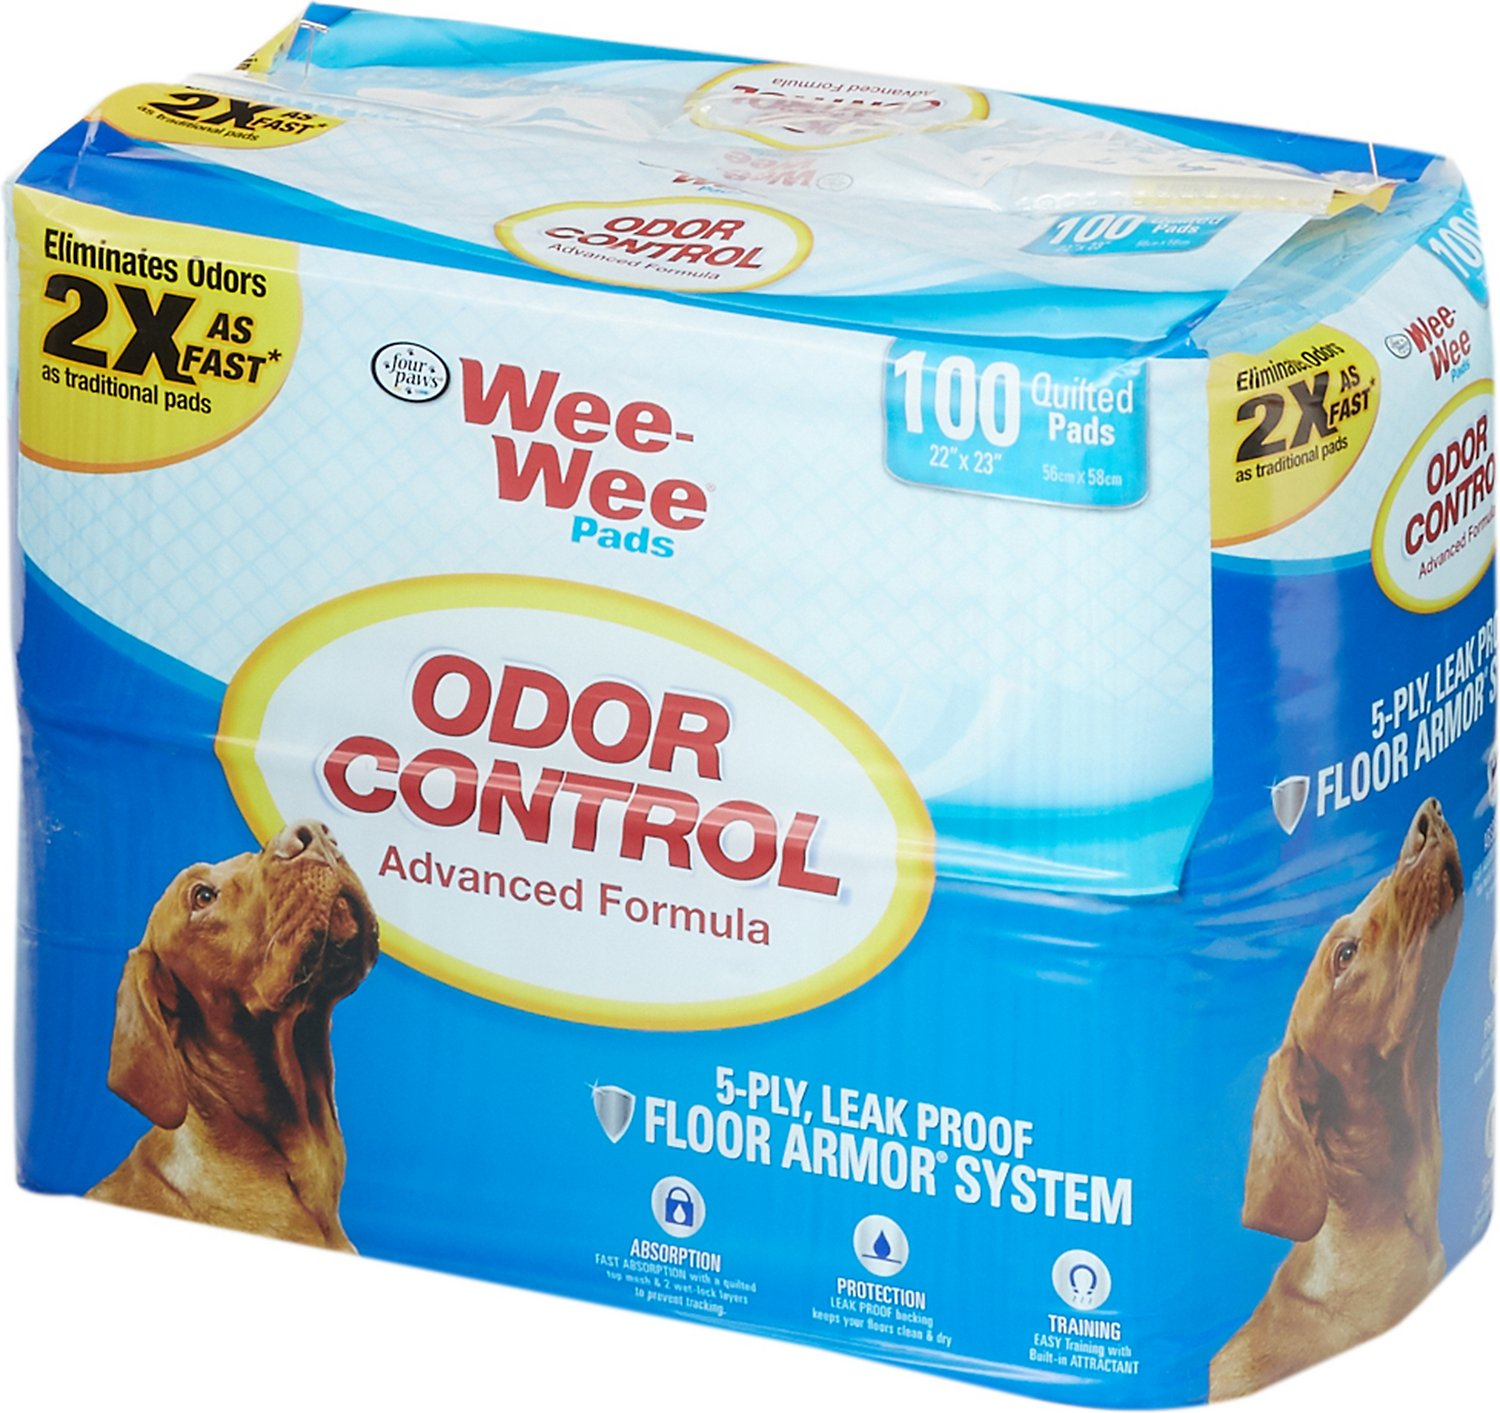 Wee-Wee Odor Control Pads for Dogs, 22 x 23 in Image